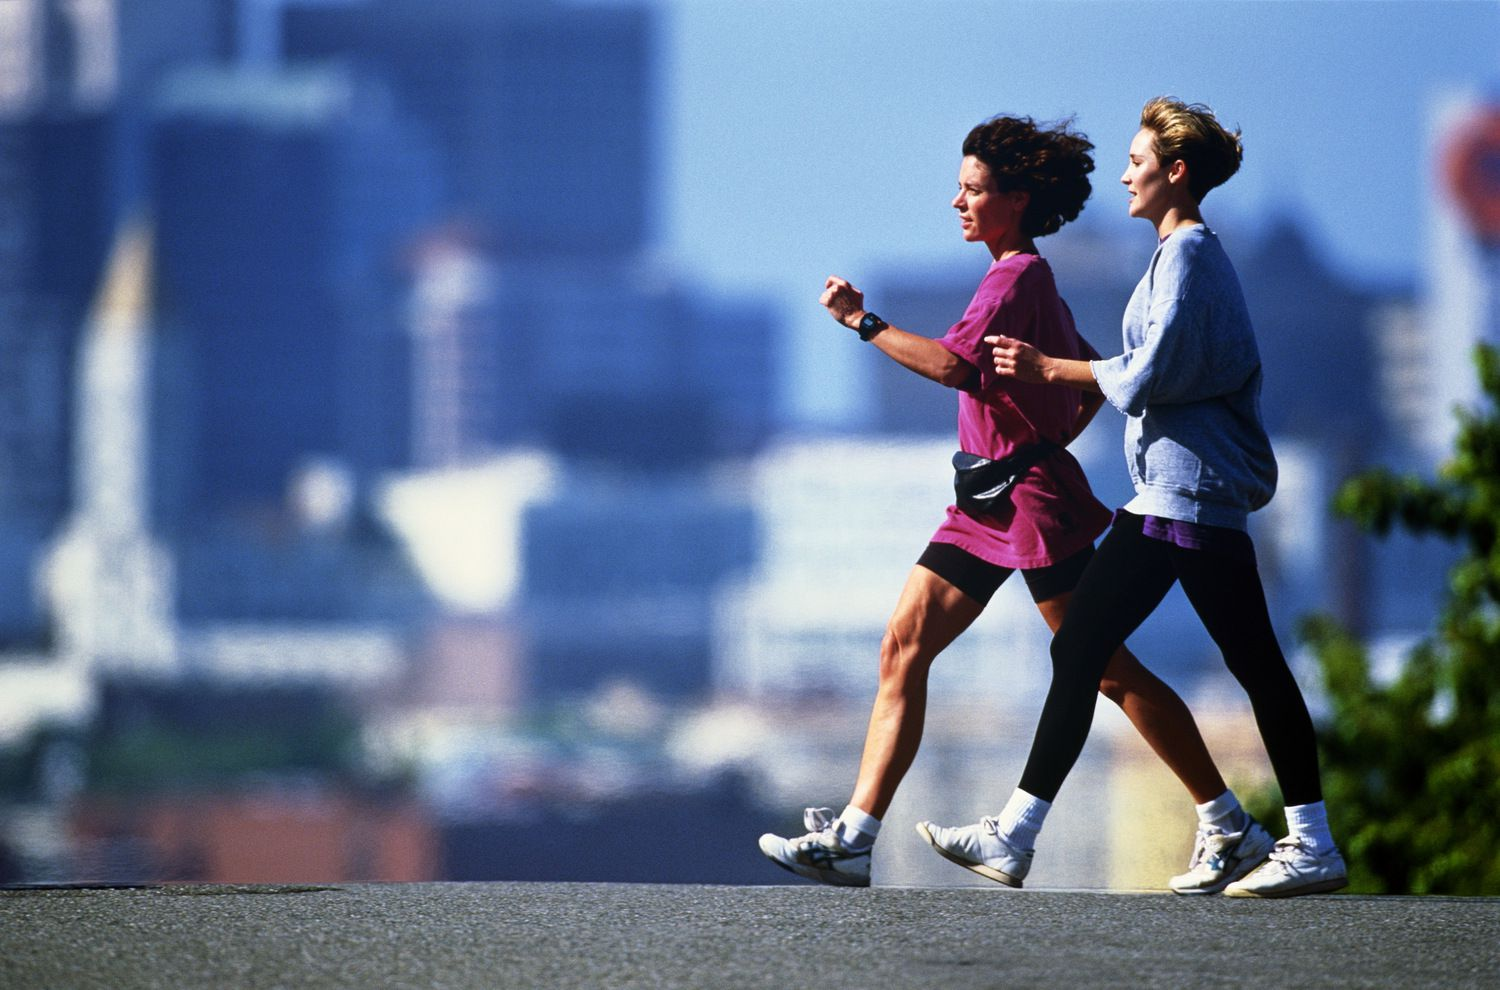 How Fast Is a Brisk Walking Pace?